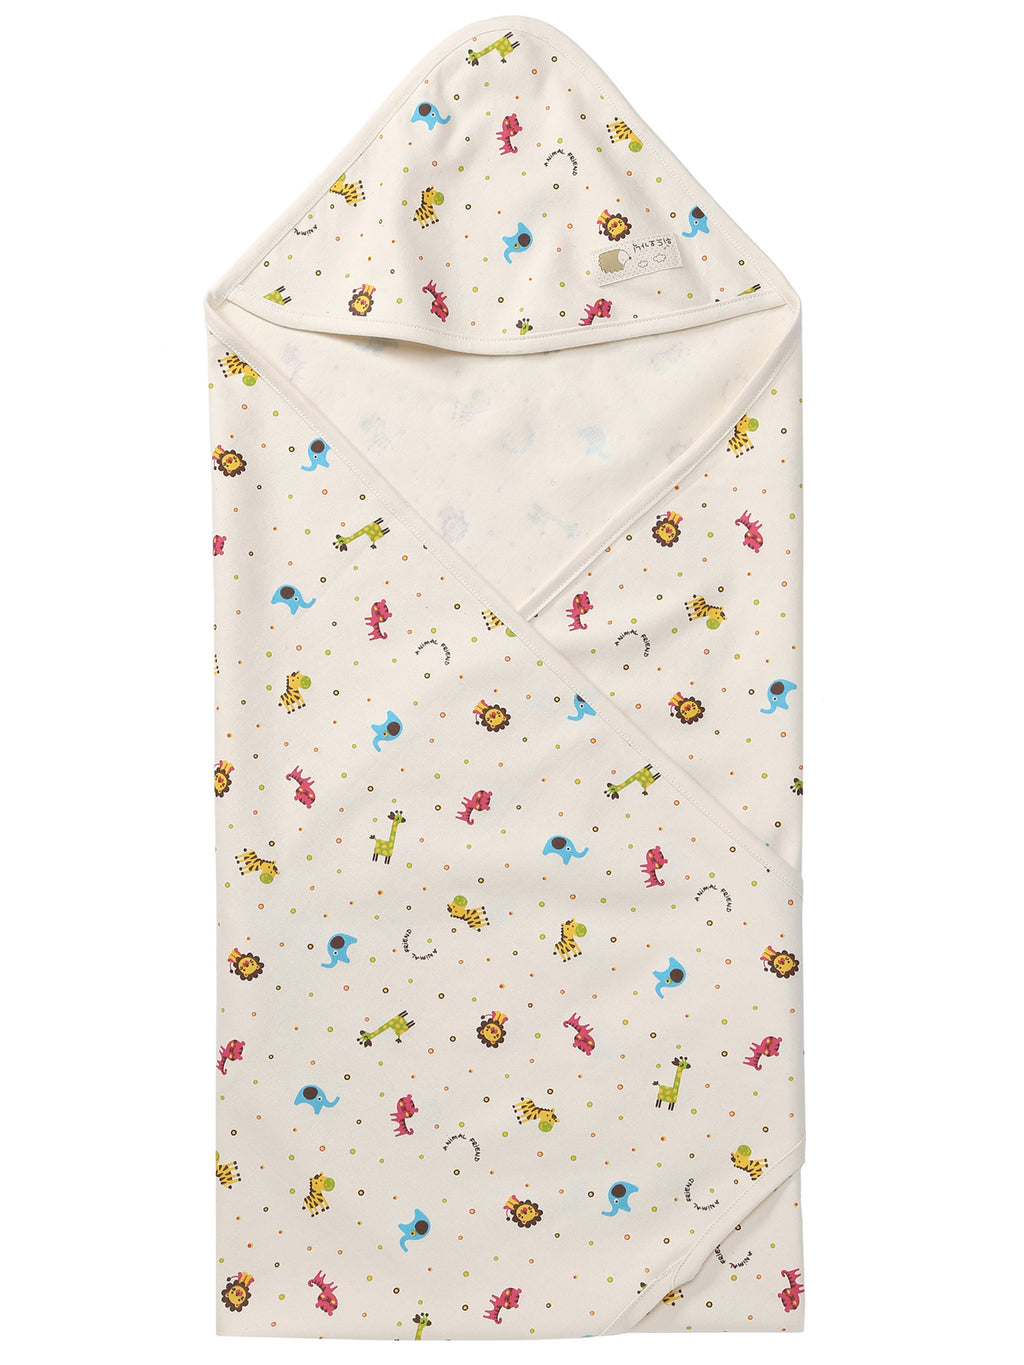 Newborn Infant Soft Swaddle Blanket - HiOrganic